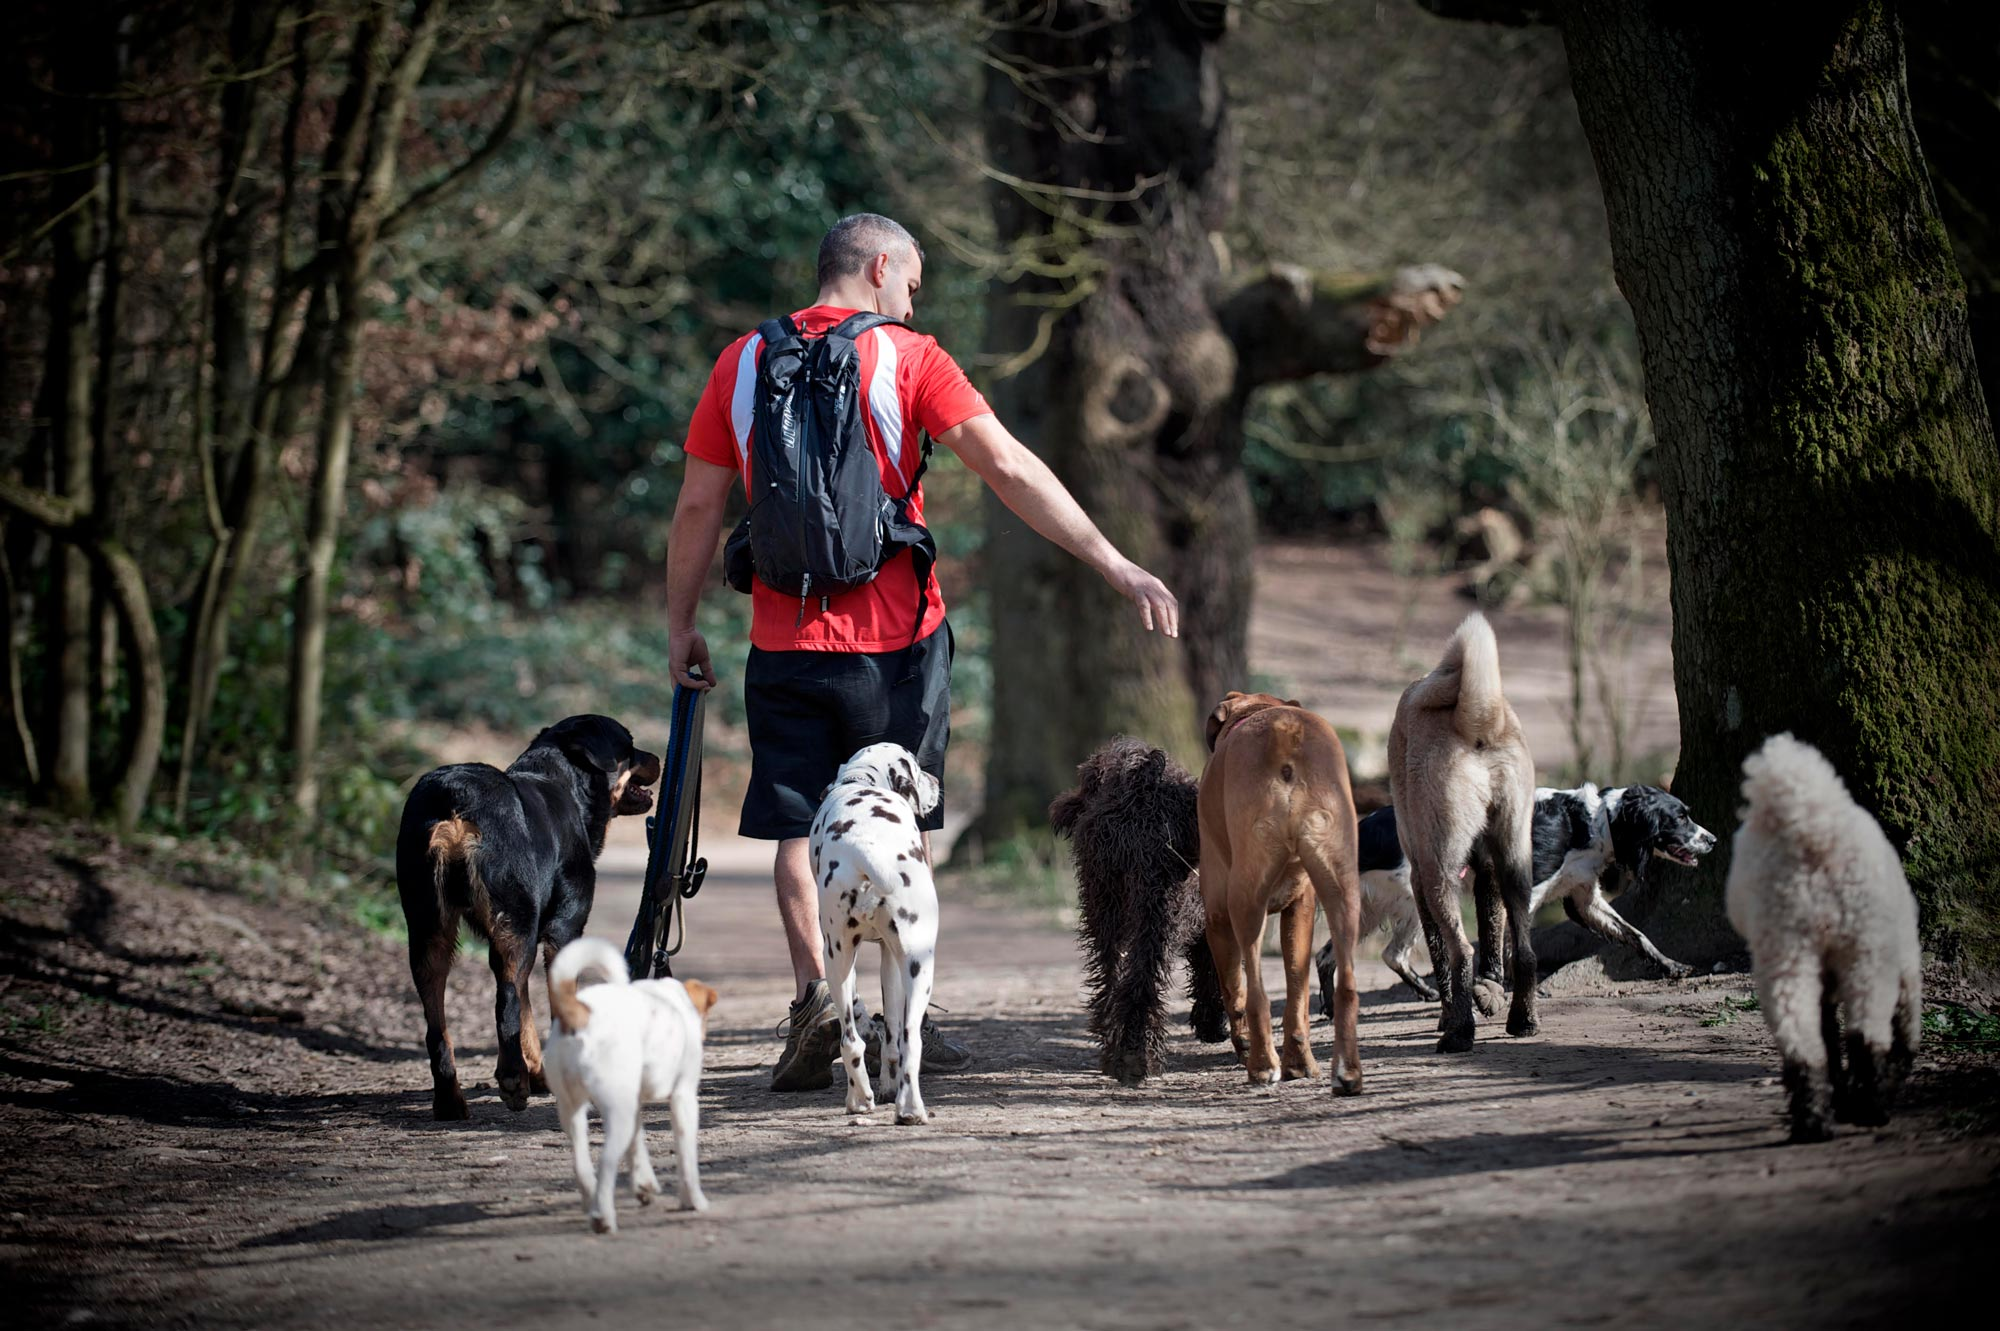 Dogs on walk in park